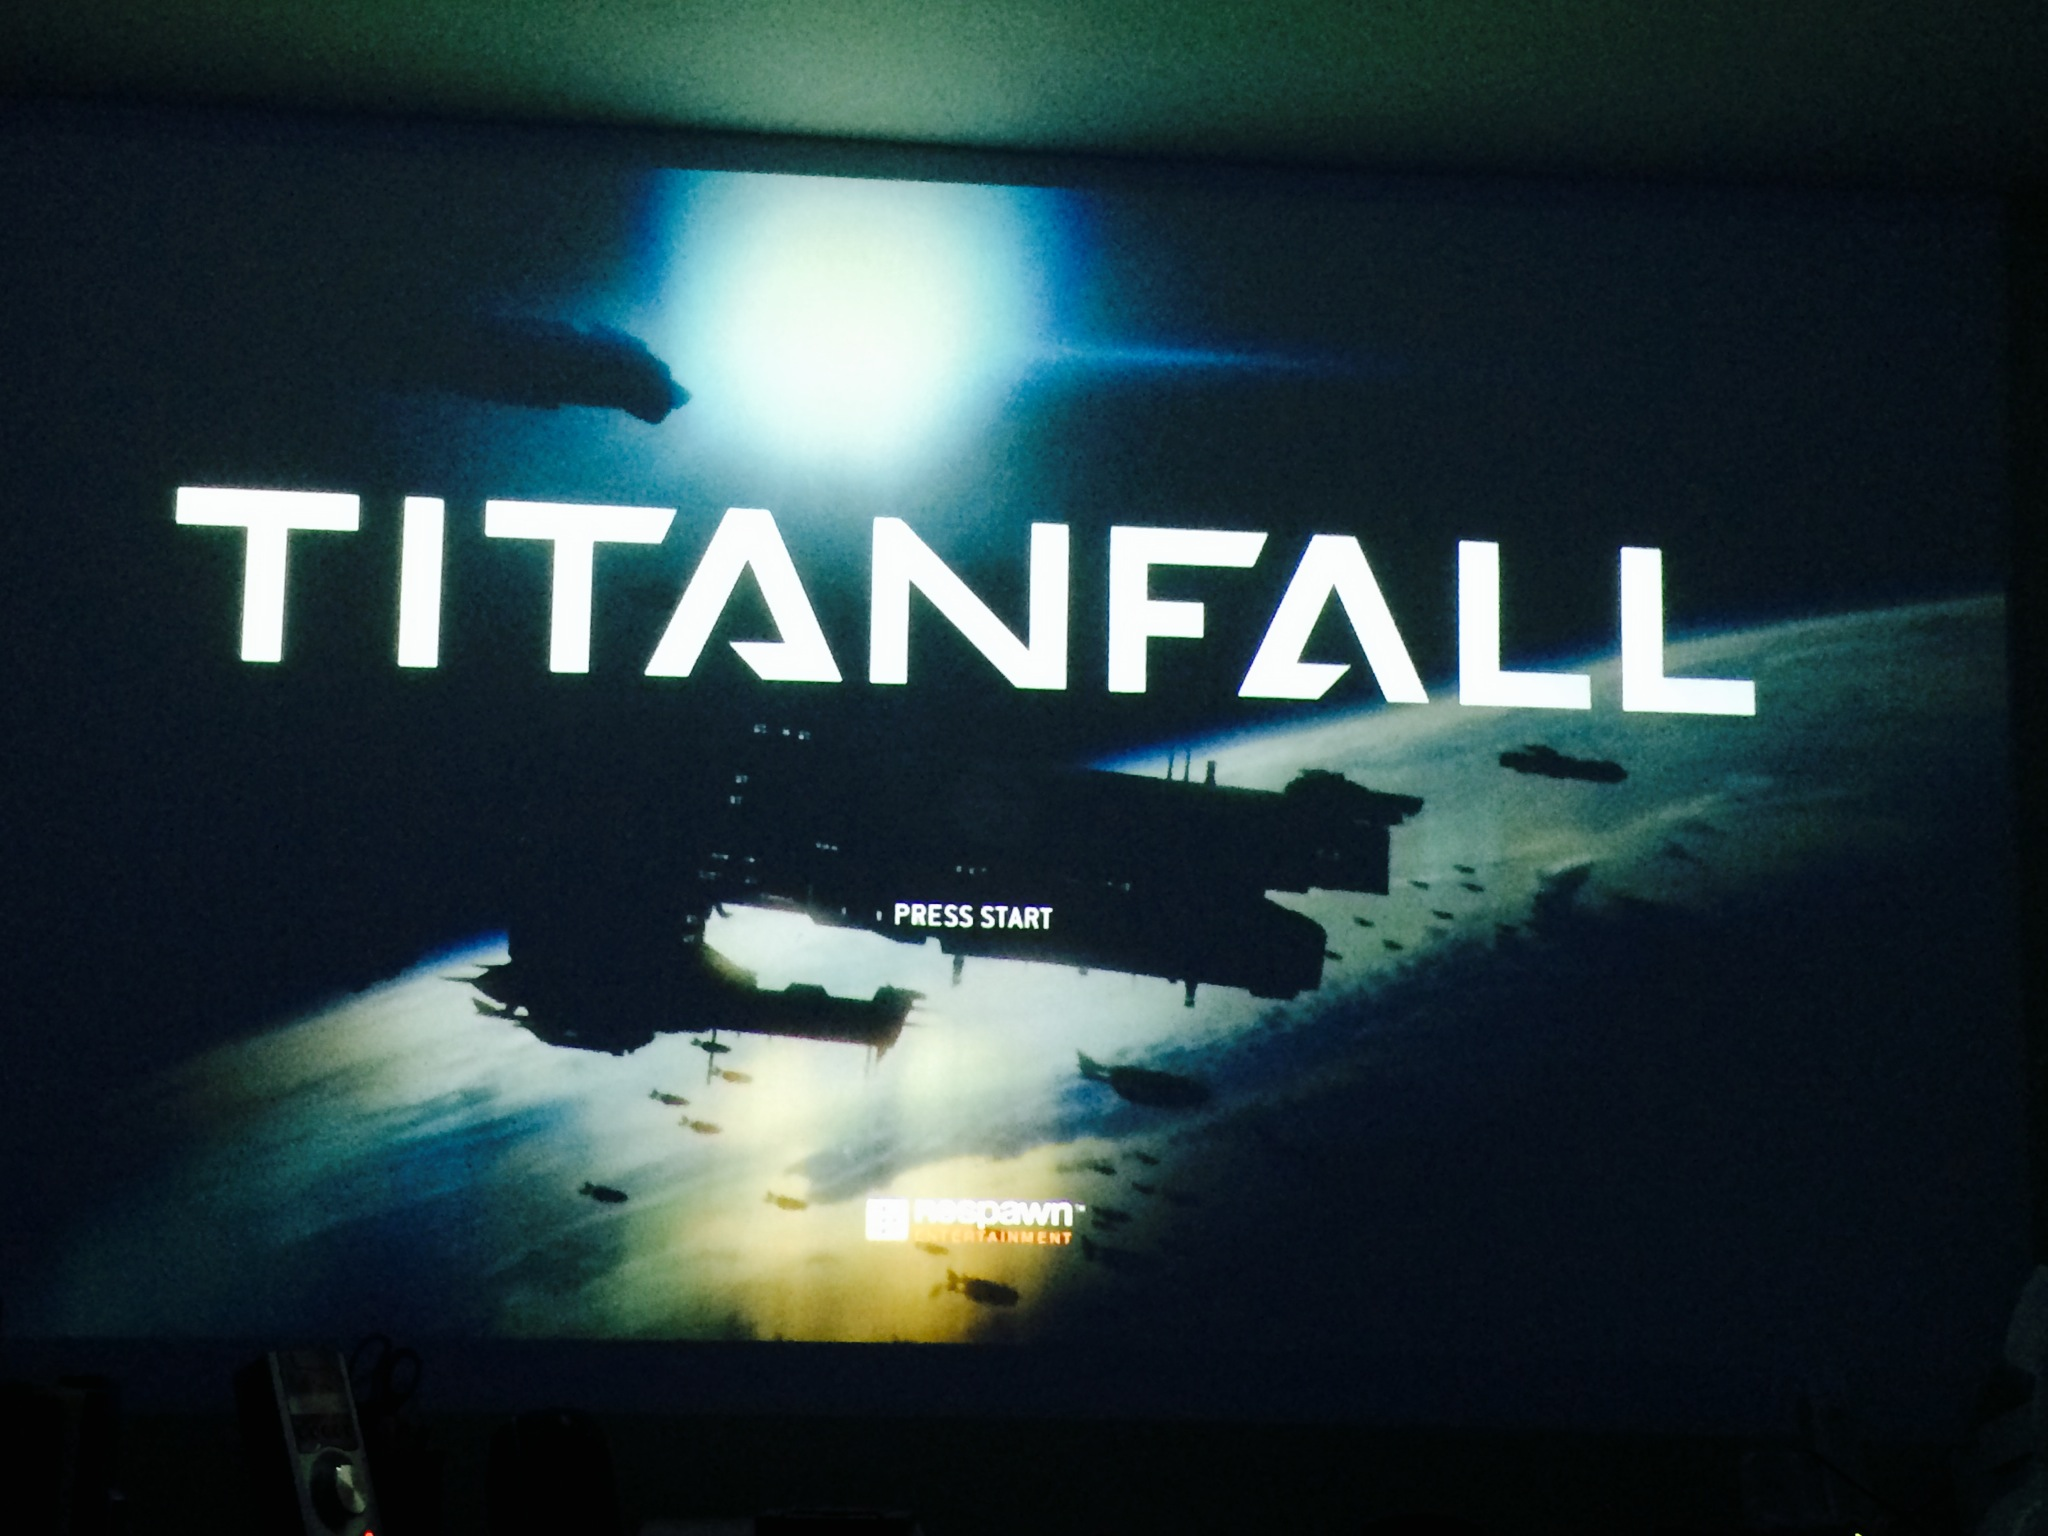 The Titanfall Intro Screen